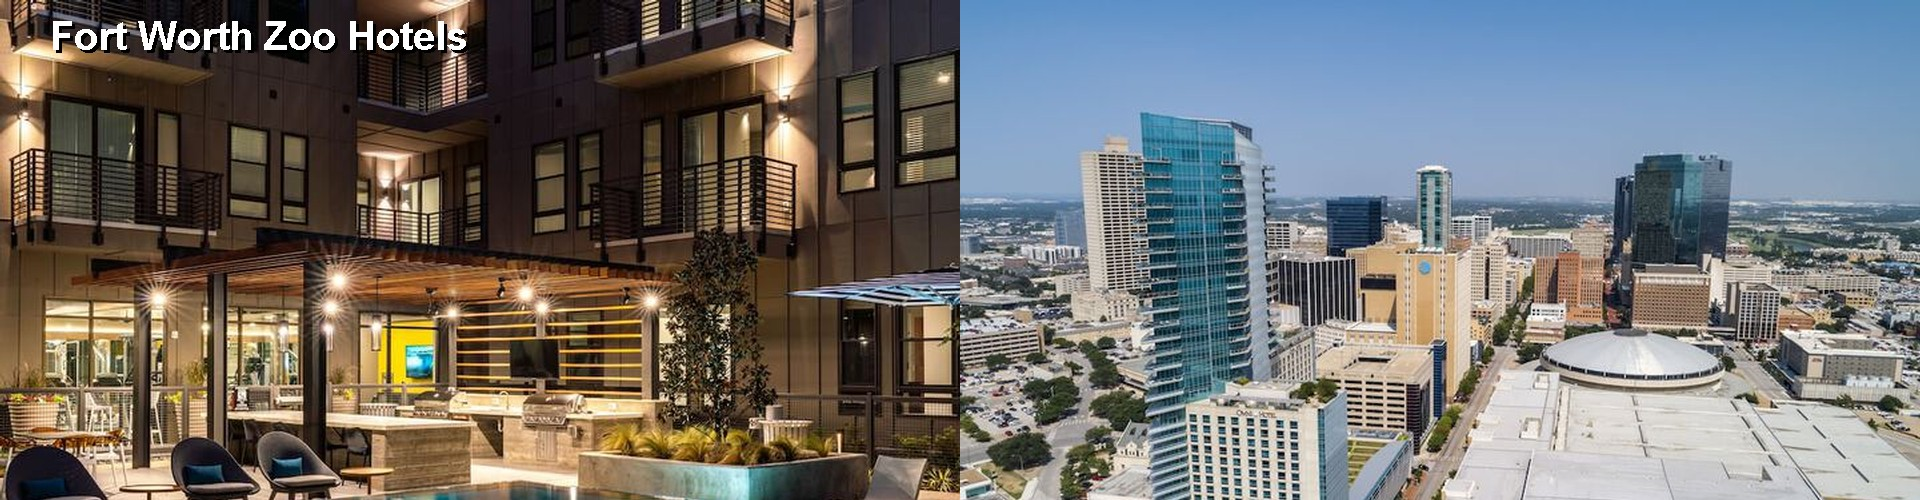 5 Best Hotels Near Fort Worth Zoo